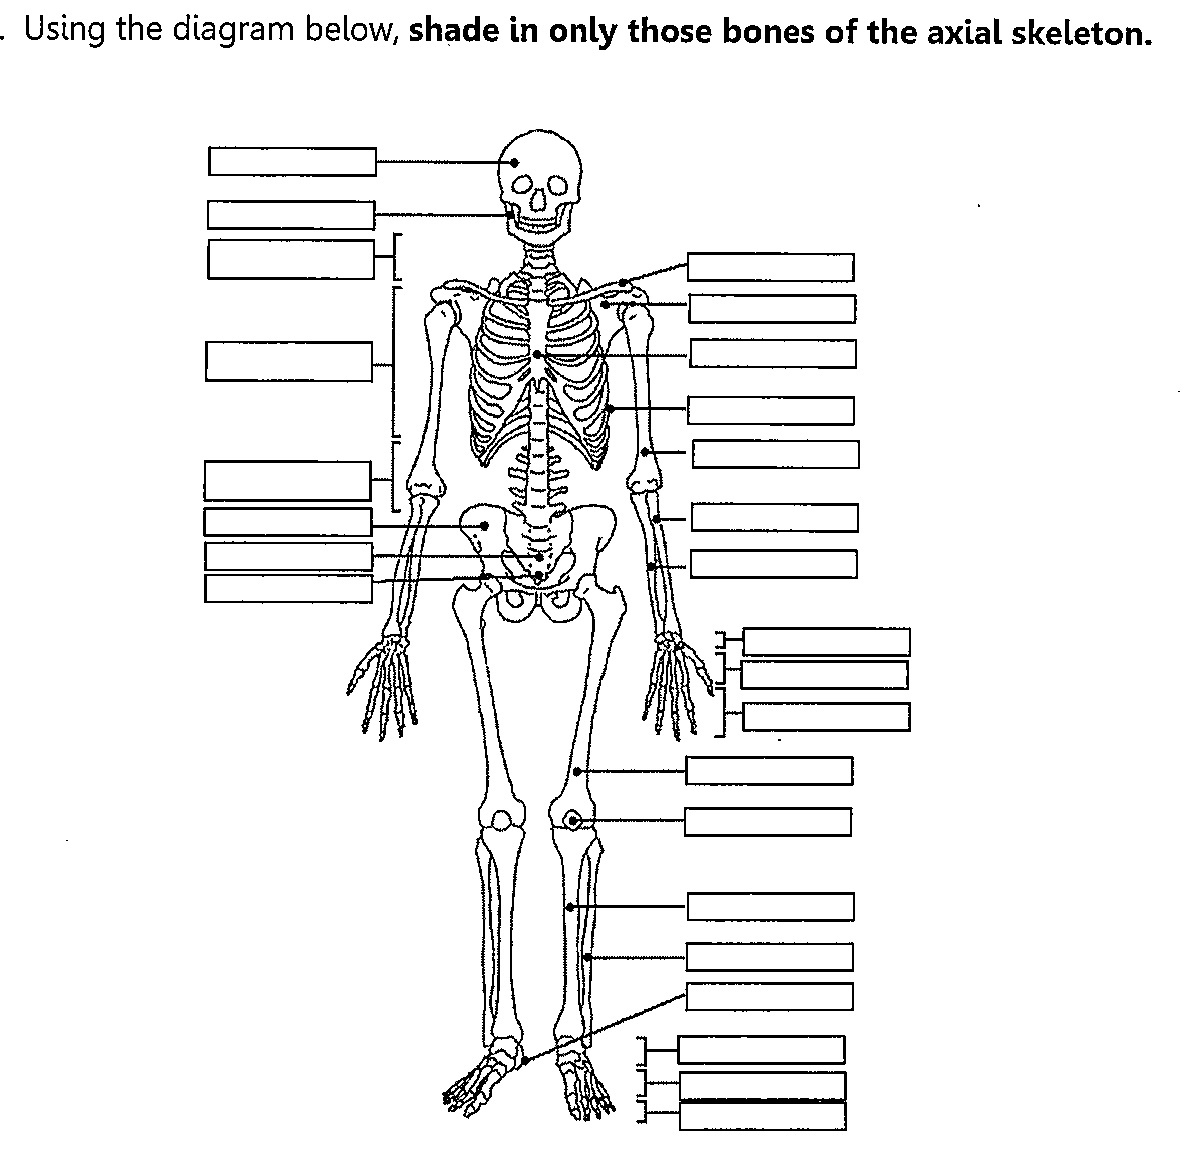 the human skeleton diagram fill in blanks 98 ford expedition fuse box axial worksheet blank yahoo image